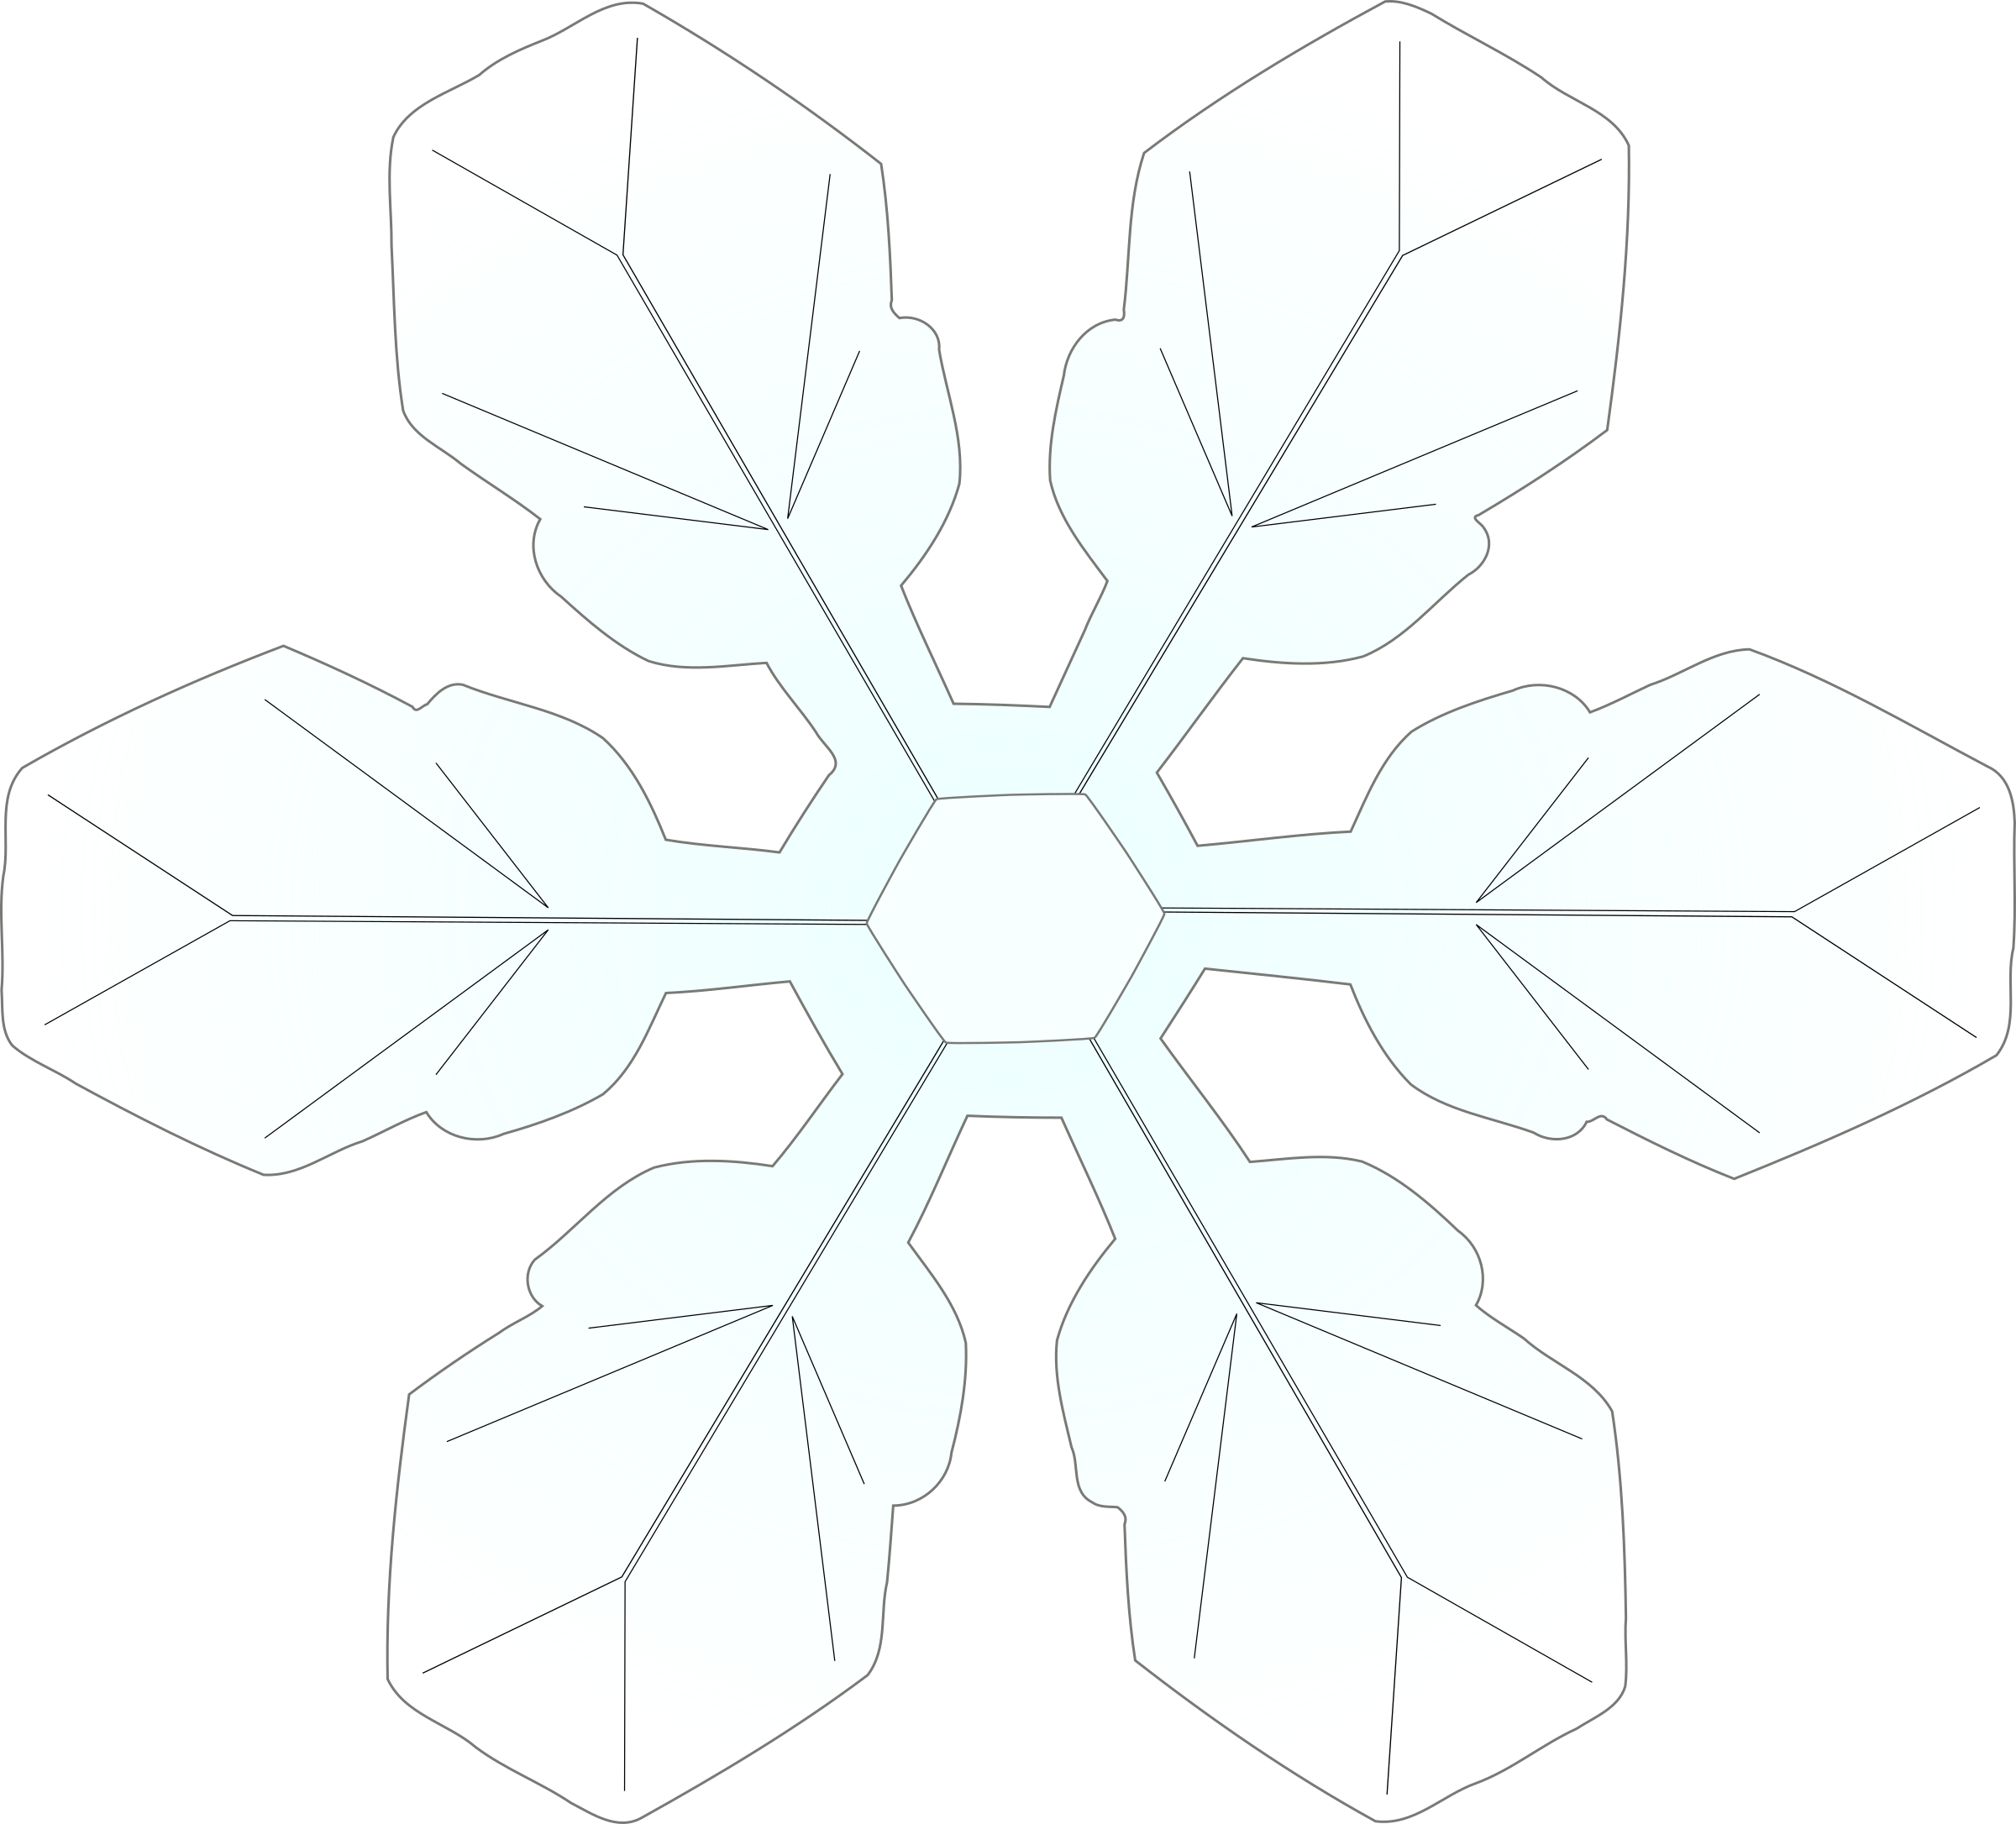 snowflake1 by TheresaKnott